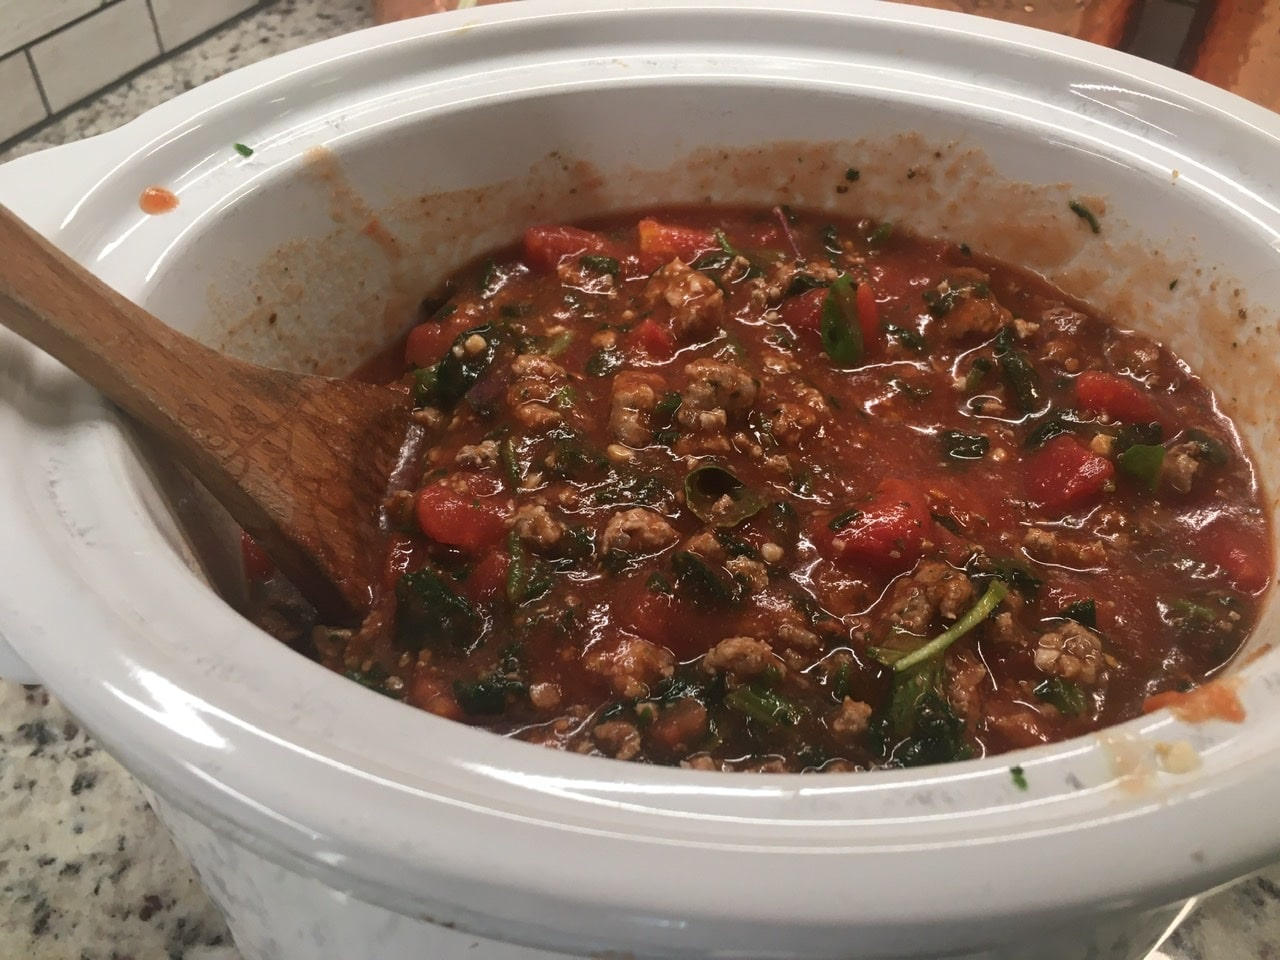 A mixture of Italian sausage, onion powder, garlic, basil, tomatoes, and tomato sauce in a slow cooker.